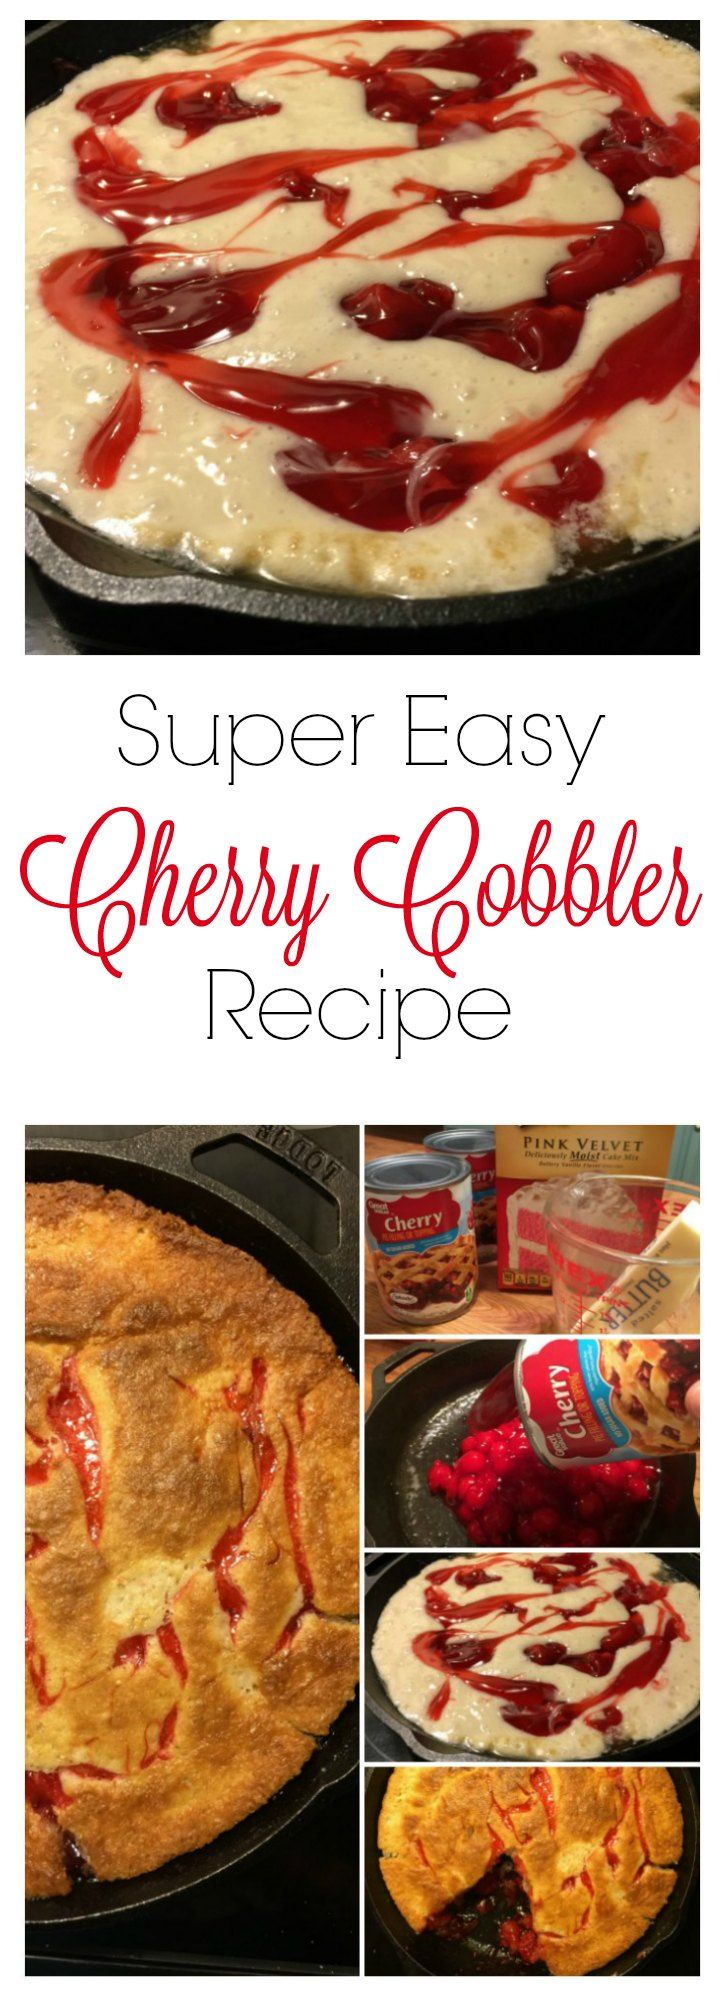 Super Easy Cherry Cobbler Recipe made using a box cake mix and canned cherry pie filling!  So easy and SO YUMMY!  #spon #cansgetyoucooking @cansgetyoucooking iSaveA2Z.com